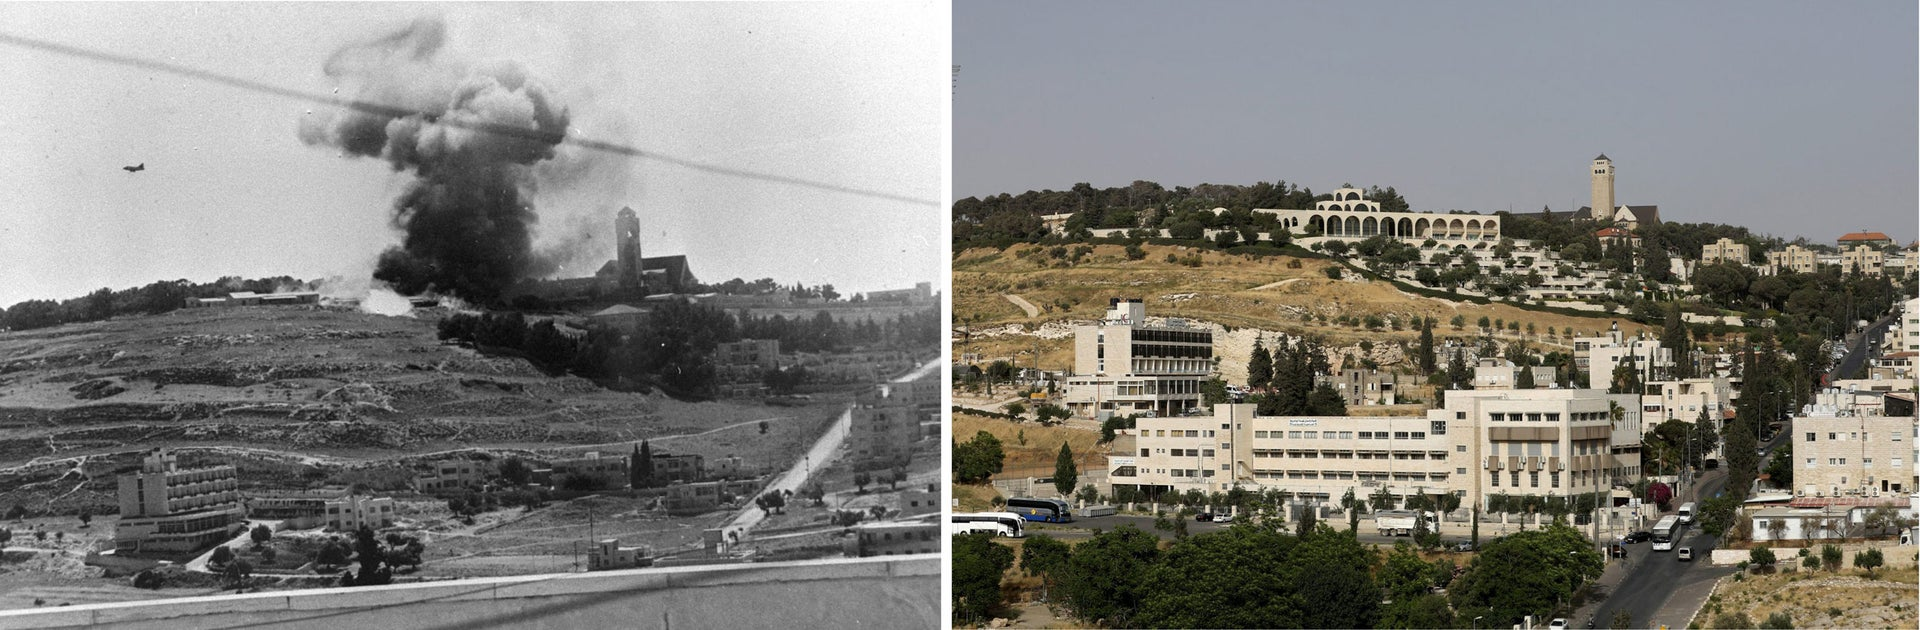 "A combination picture shows Arab legion positions seen under fire to clear way for Israeli units to takeover the hills surrounding the Jerusalem's Old City during the 1967 Middle East War, in this Government Press Office handout photo, taken June 6, 1967 (top) and the view of the East Jerusalem neighbourhood of Wadi al-Joz in the foreground and Mount of Olives in the background May 14, 2017. REUTERS/Government Press Office/Handout via Reuters (top)/Ronen Zvulun THIS PICTURE WAS PROVIDED BY A THIRD PARTY. REUTERS IS UNABLE TO INDEPENDENTLY VERIFY THE AUTHENTICITY, CONTENT, LOCATION OR DATE OF THIS IMAGE. FOR EDITORIAL USE ONLY. NOT FOR SALE FOR MARKETING OR ADVERTISING CAMPAIGNS. SEARCH ""1967 WAR"" FOR THIS STORY. SEARCH ""WIDER IMAGE"" FOR ALL STORIES."